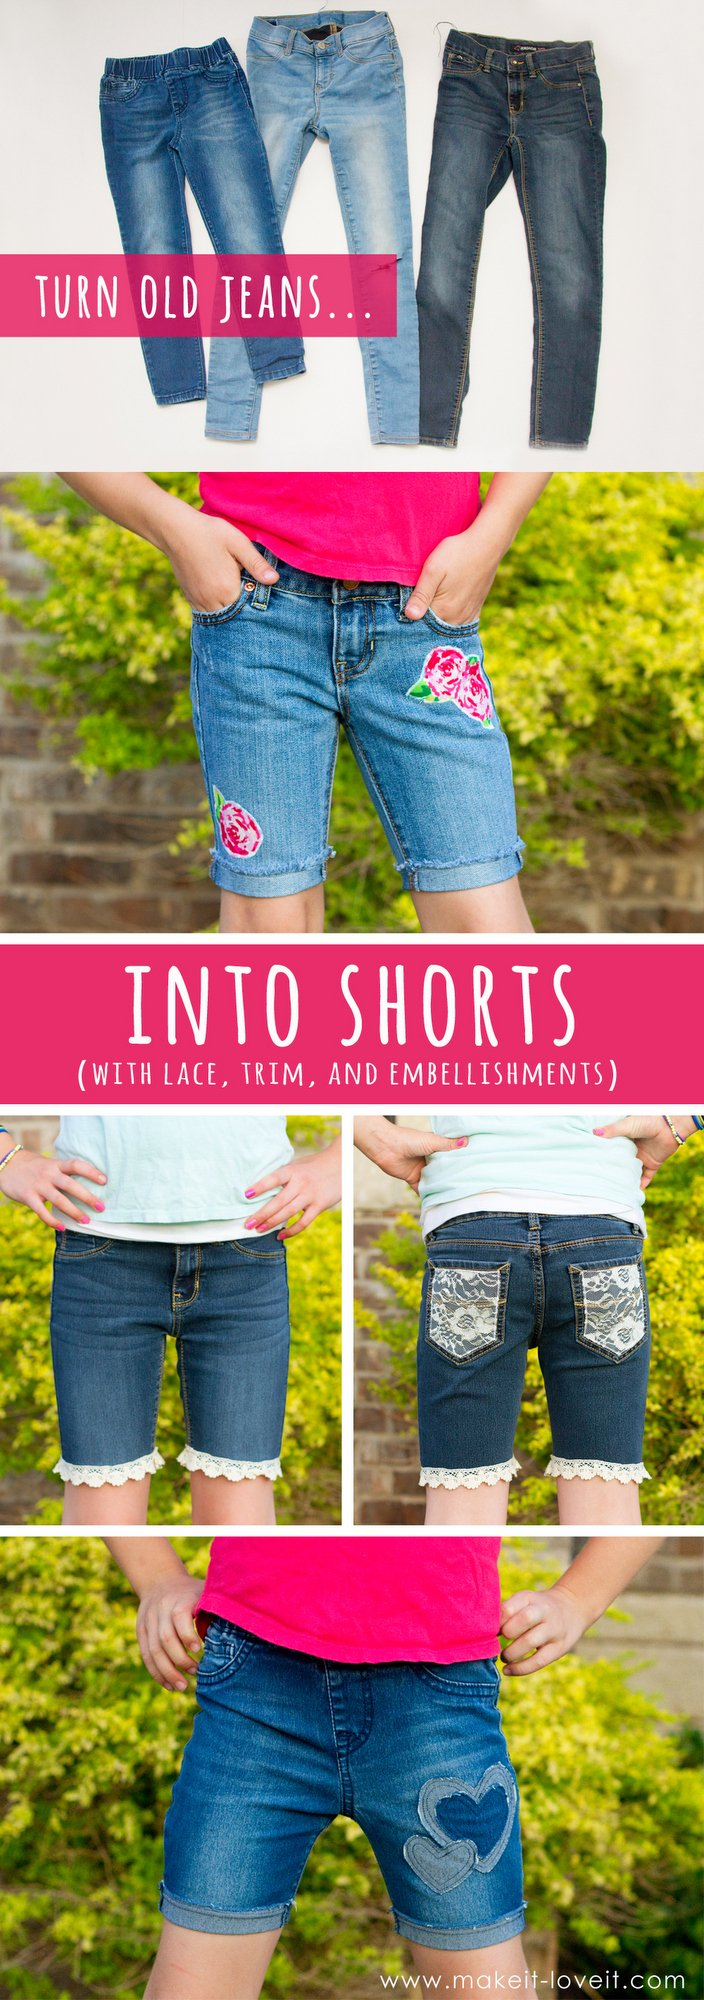 decee8d79b How To Turn Jeans Into Shorts (…with lace, trim, and embellishments!) |  Make It and Love It | Bloglovin'